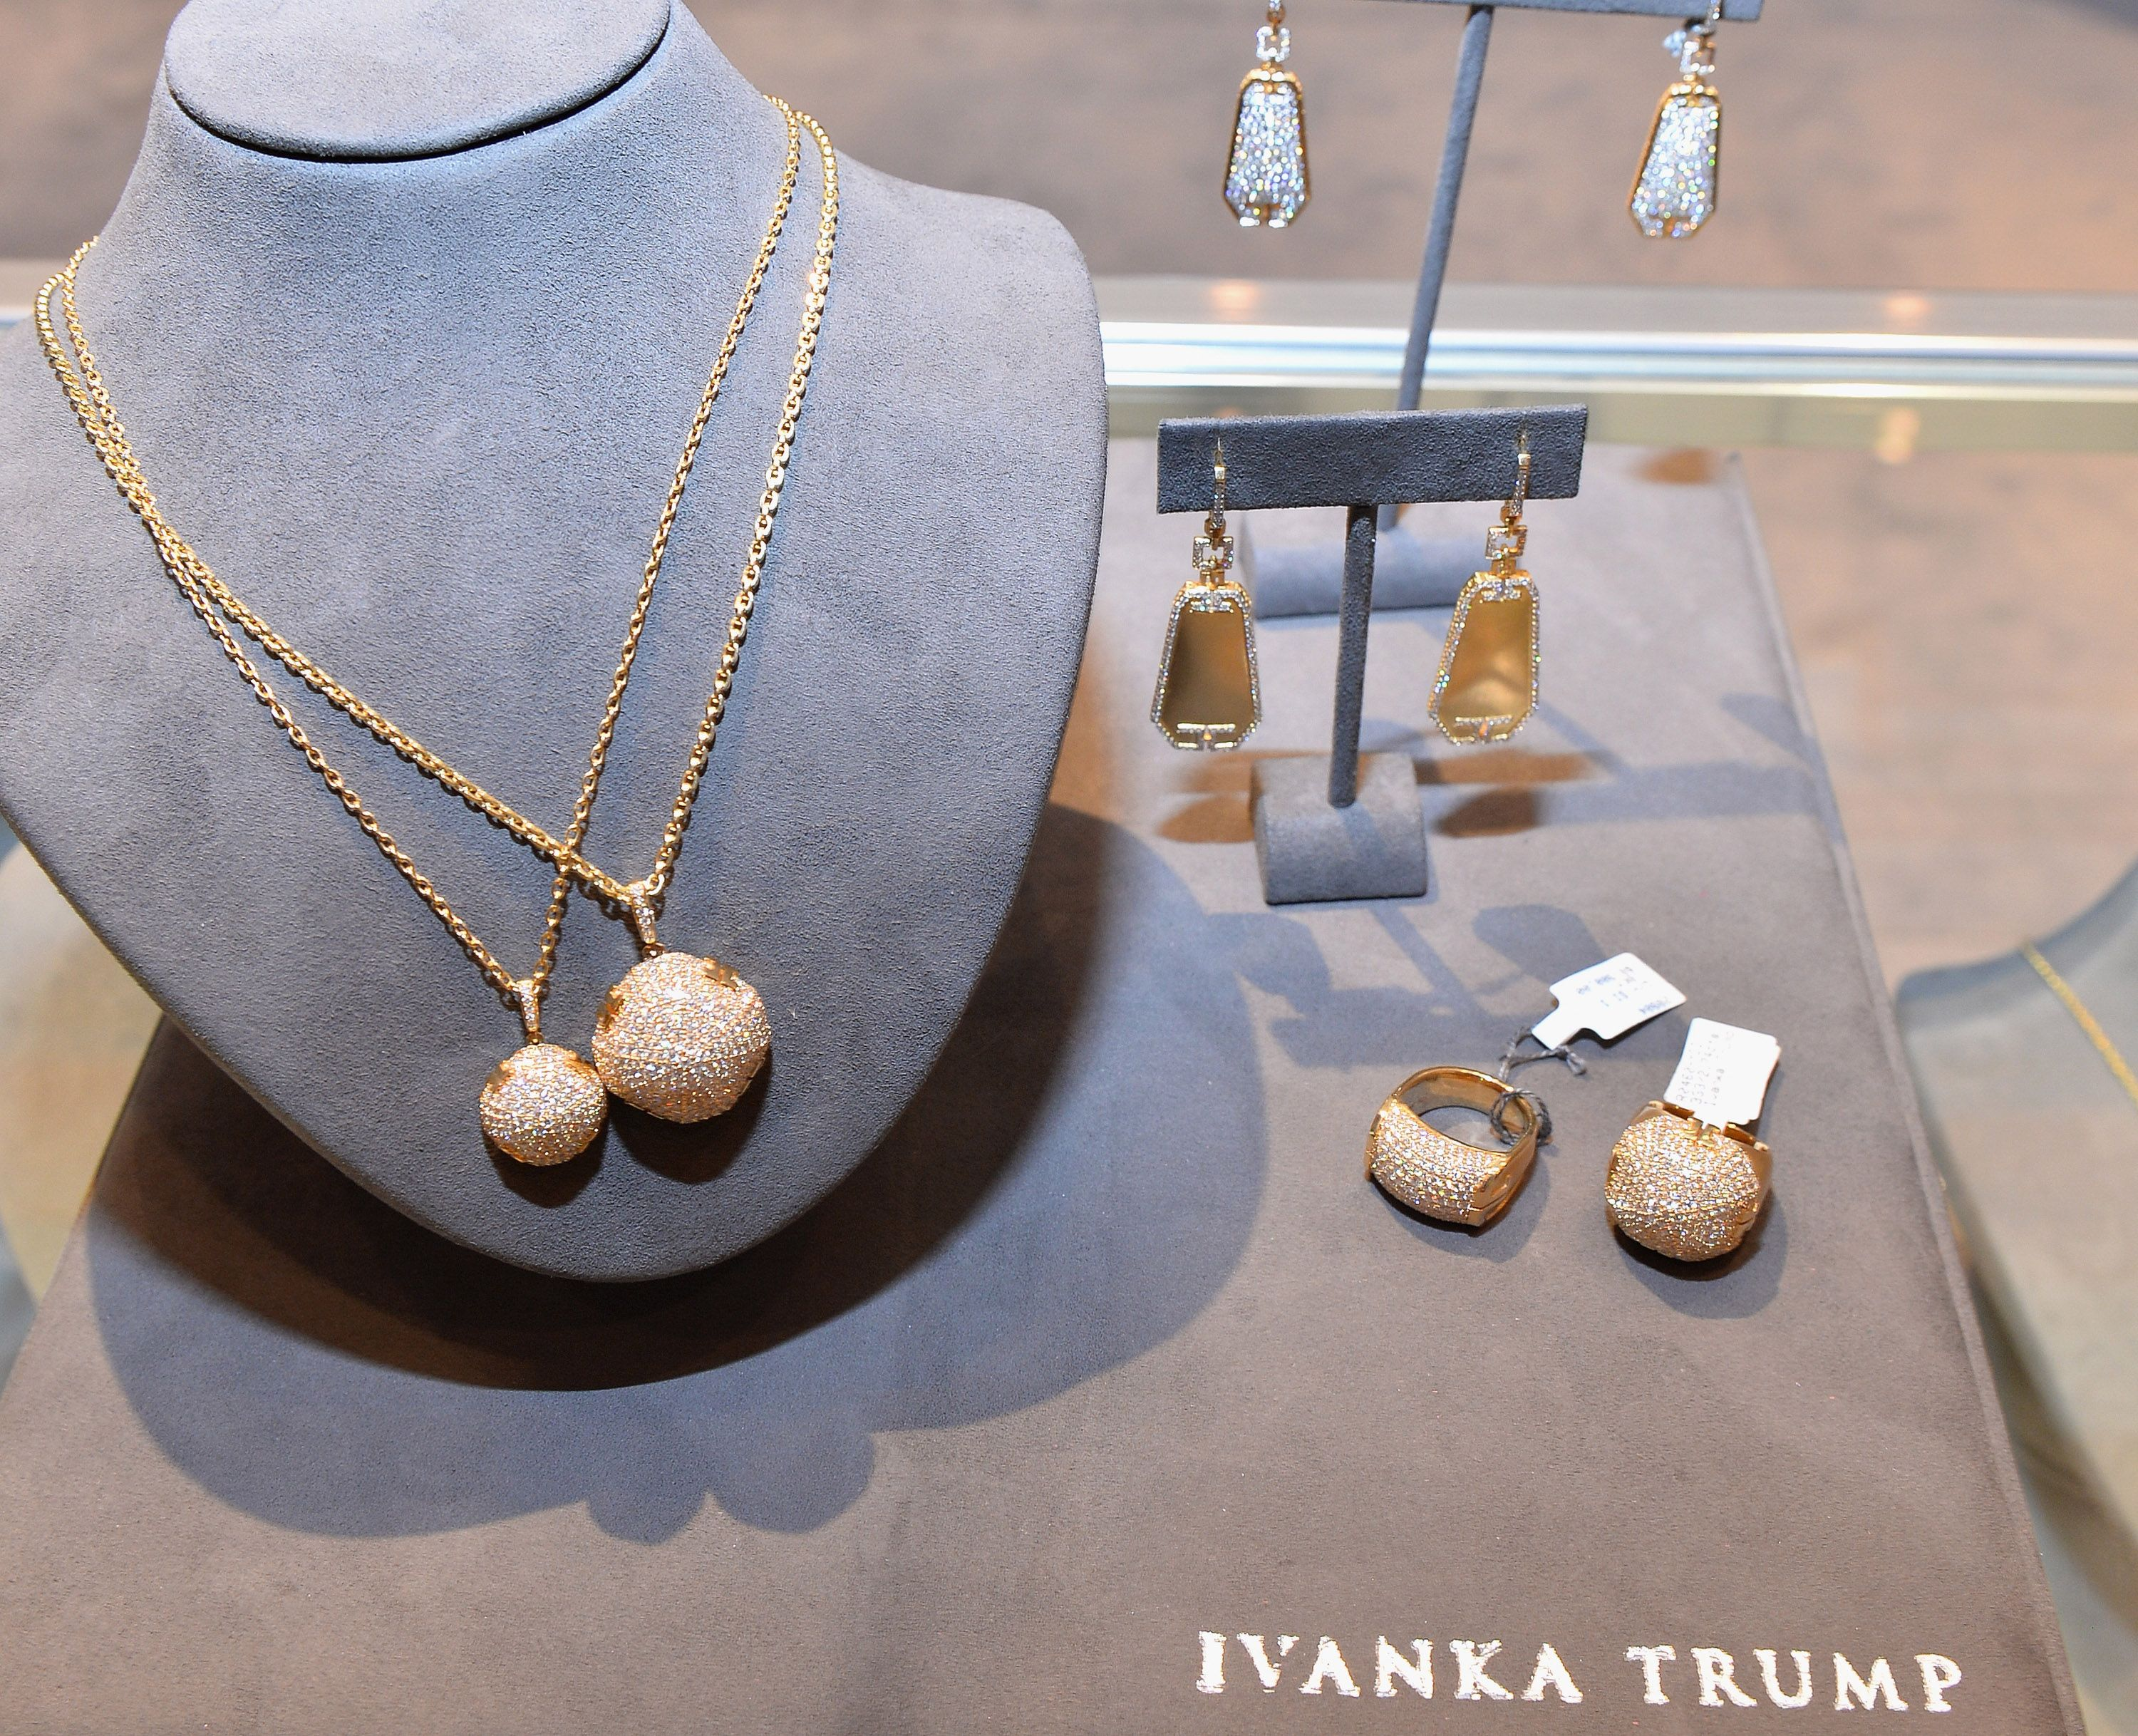 Ivanka Trump Jewelry Showroom At The Couture Jewelry Show